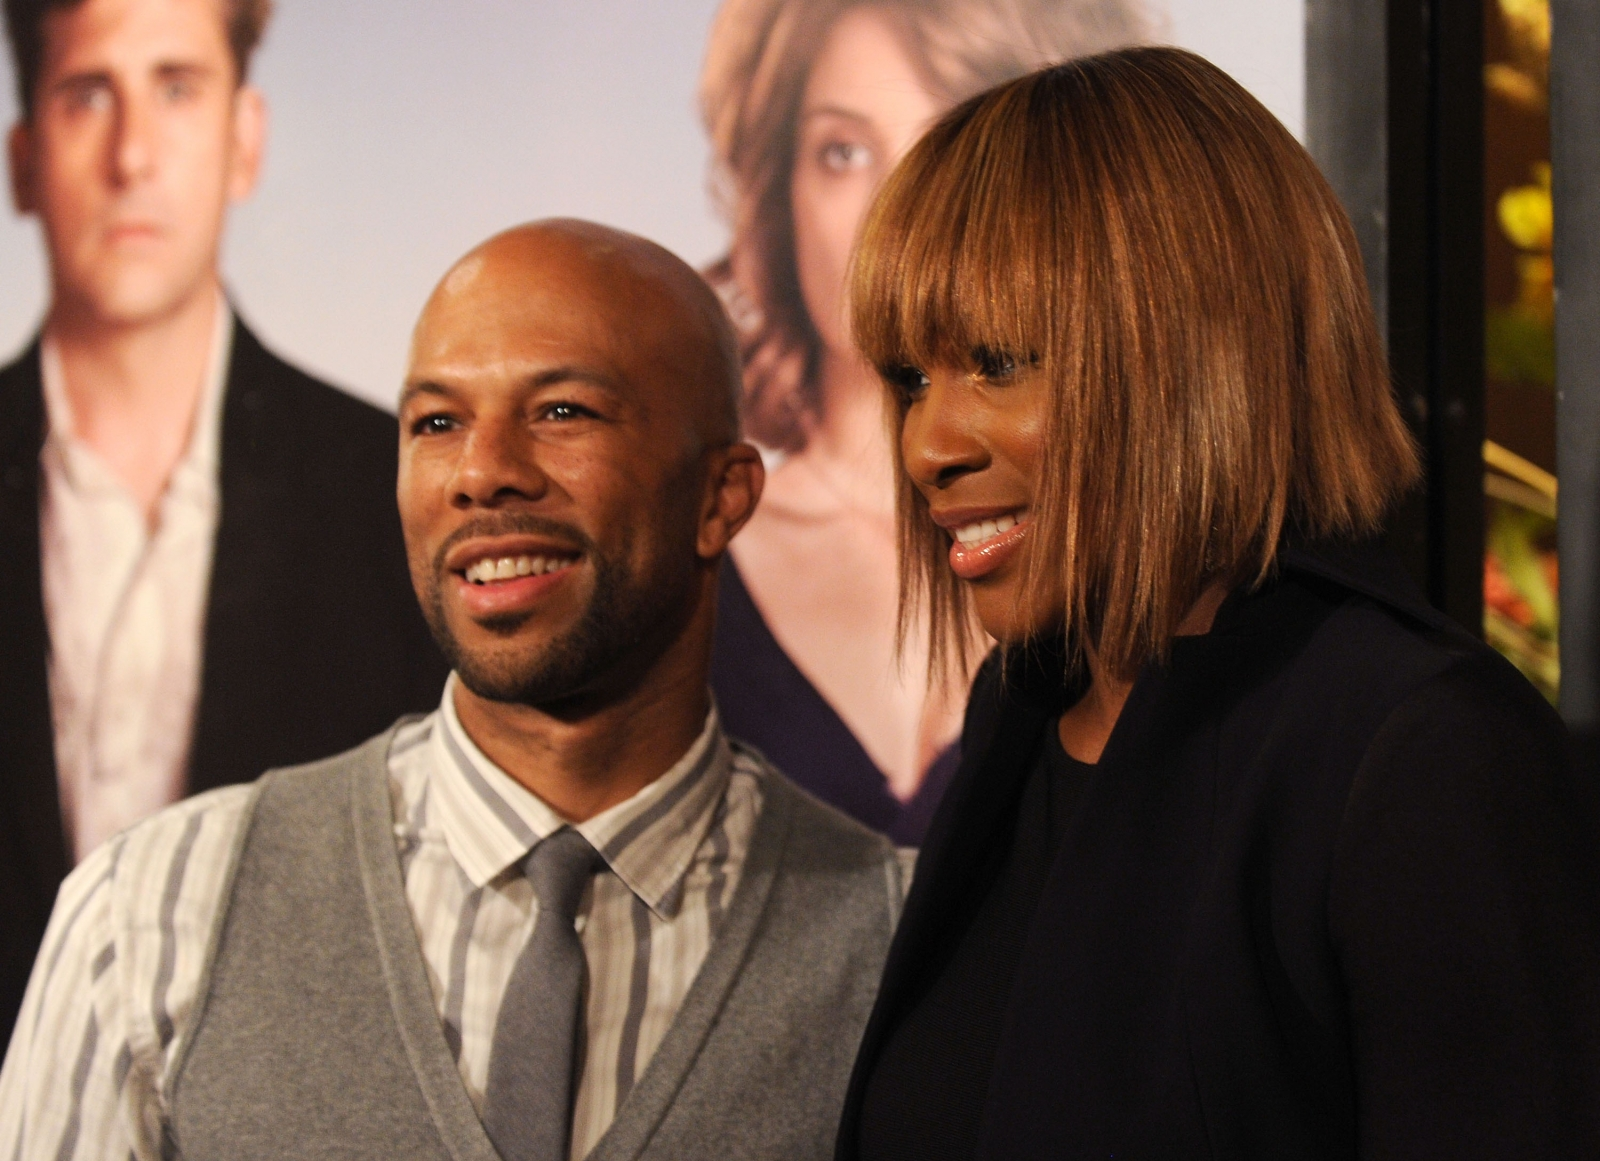 Common Why He d Want A Do-Over With Serena Williams